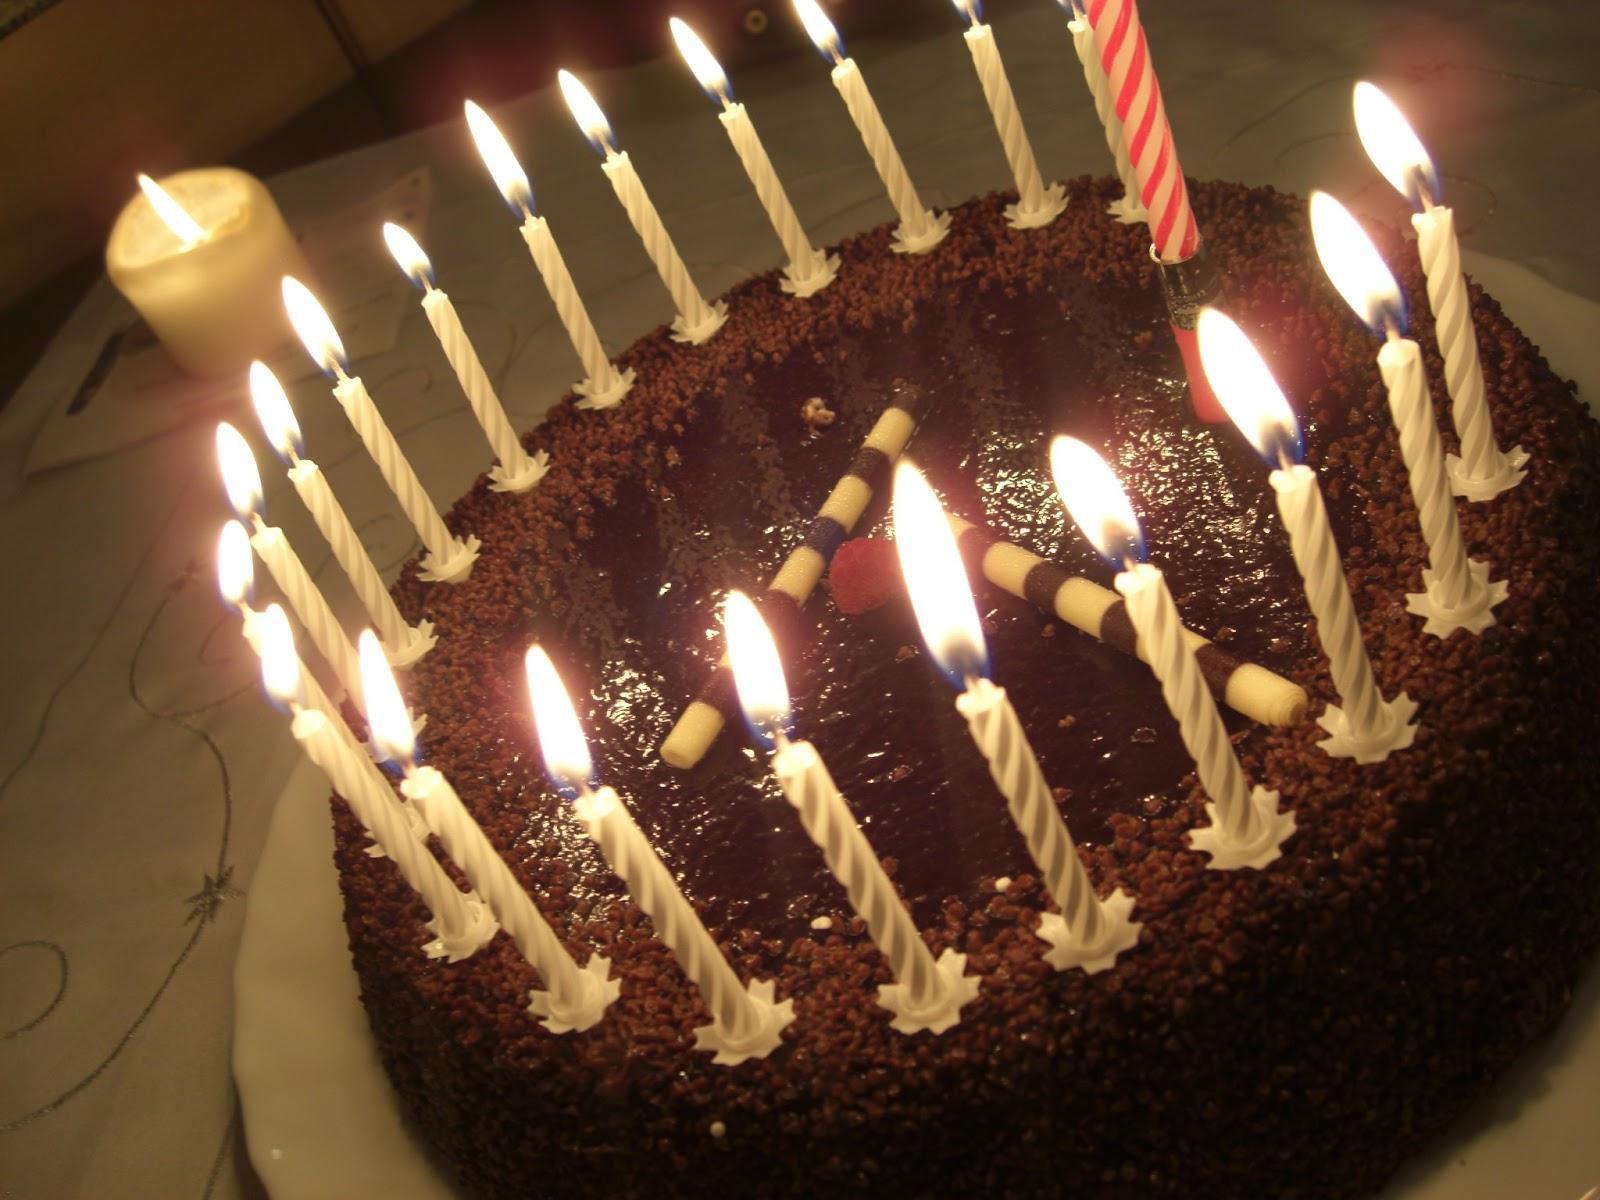 picture of birthday cake with burning candles ; images-birthday-cake-with-burning-candles